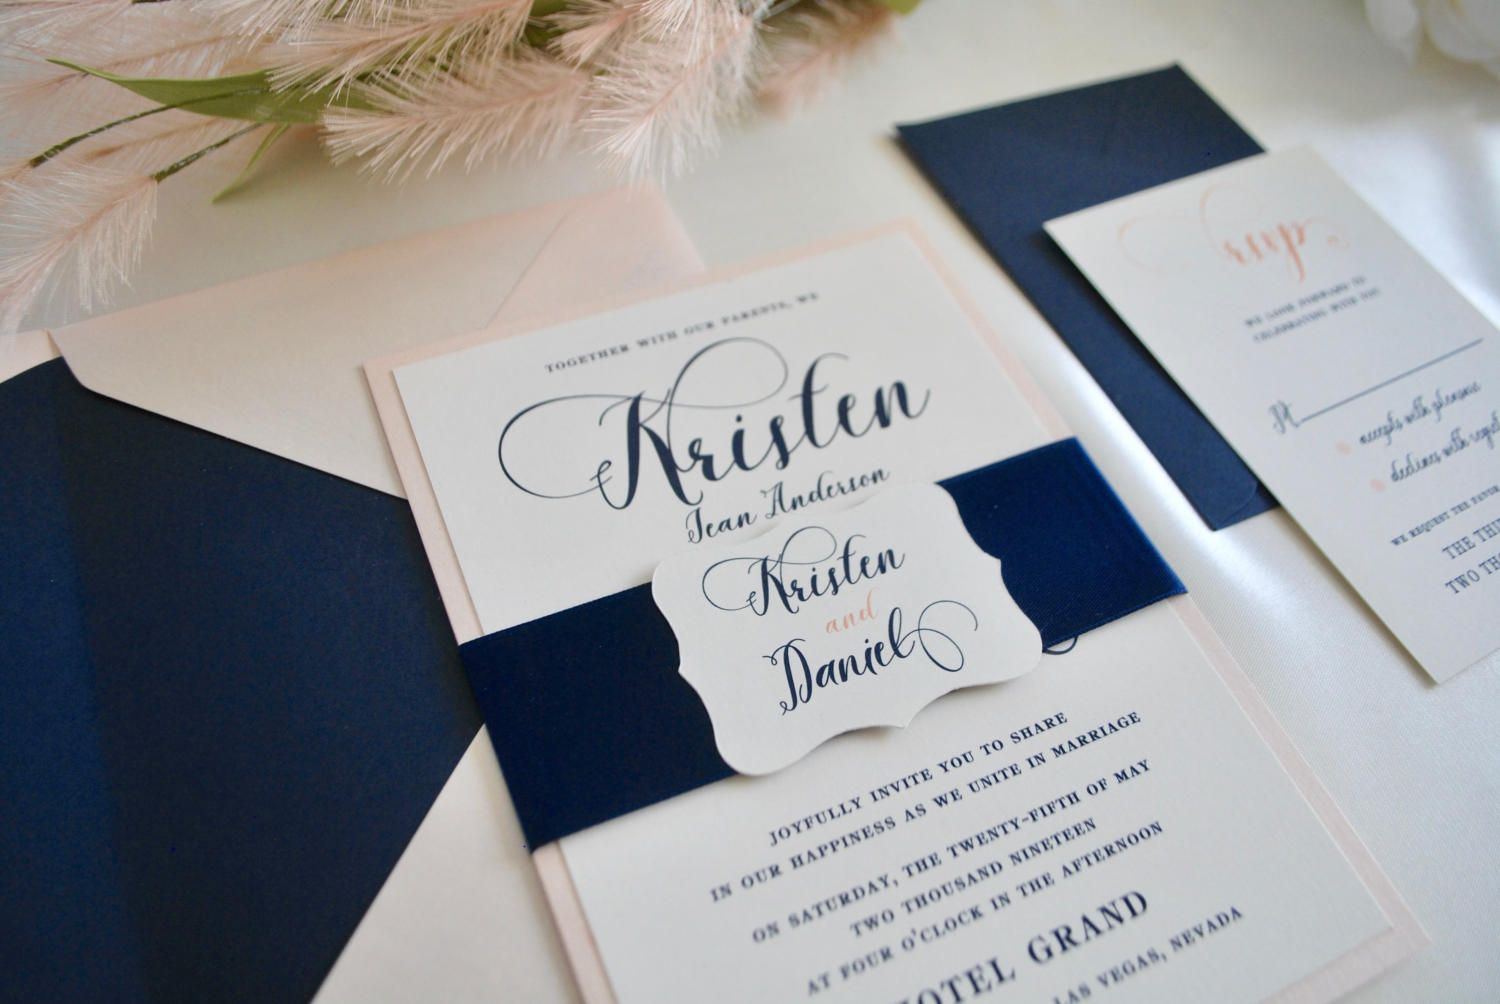 Price Packages Range From 2 75 5x7 Invitation Is Printed On Cream Cardstock And Mounted Blue And Blush Wedding Blush Wedding Invitations Wedding Invitations